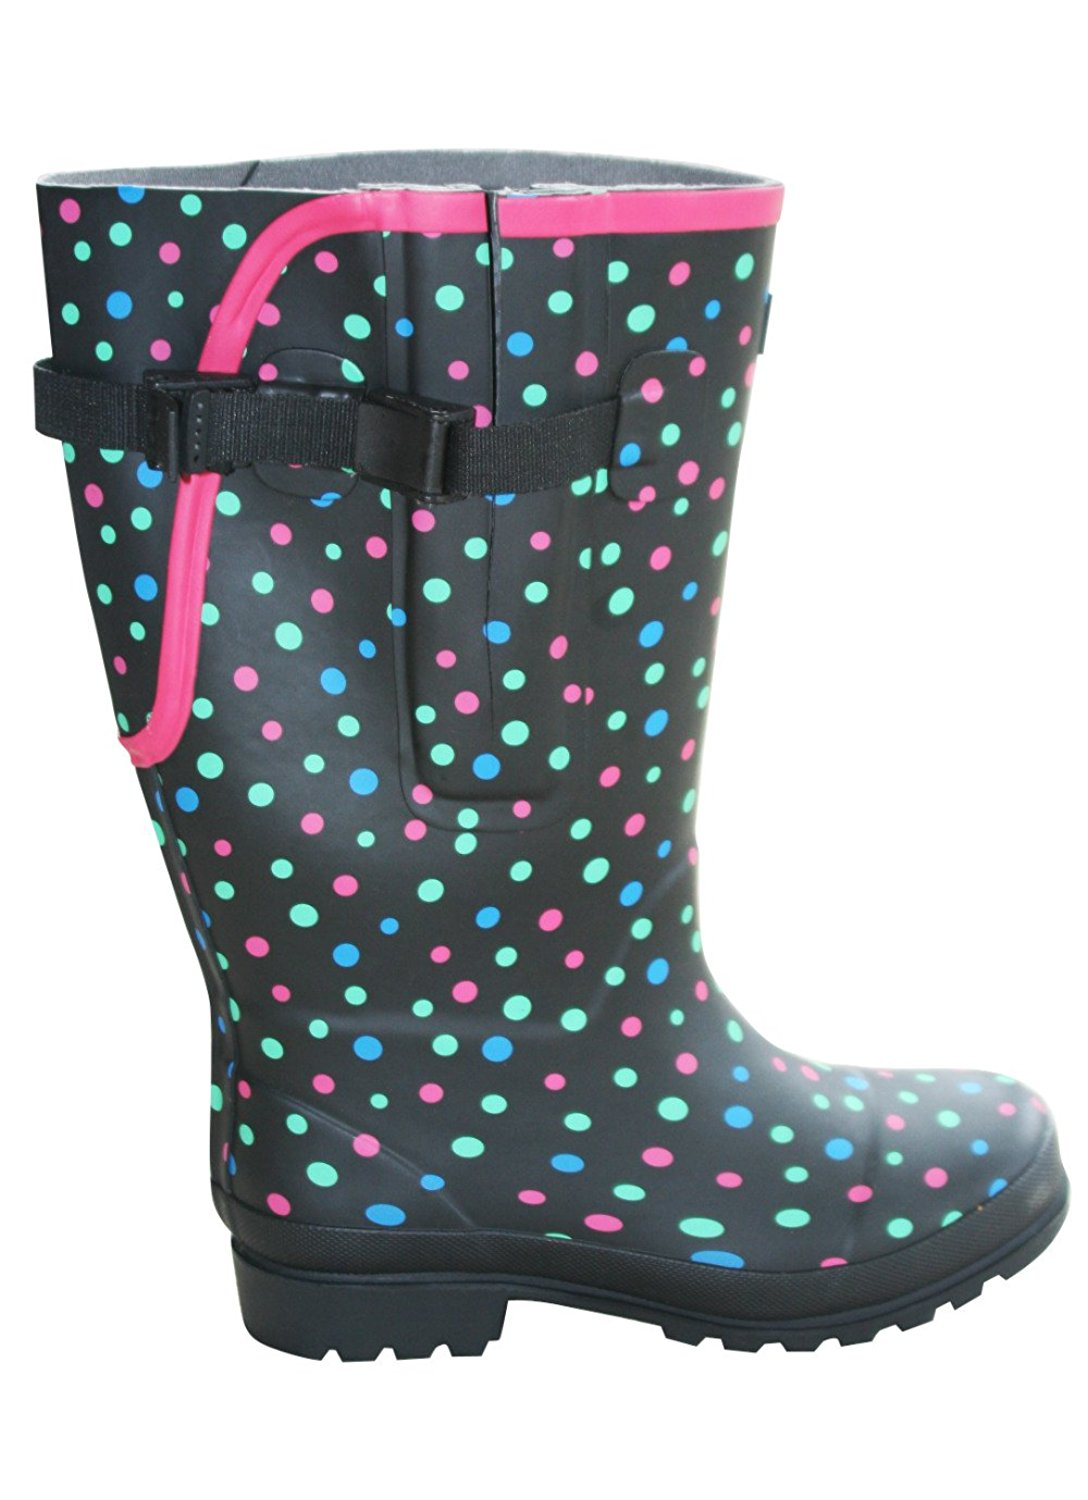 Jileon Extra Wide Calf Rubber Rain Boots with Rear Expansion -Widest Fit Boots in The US - up to 21 inch Calves- Wide in The Foot and Ankle -Durable Boots for All Weathers